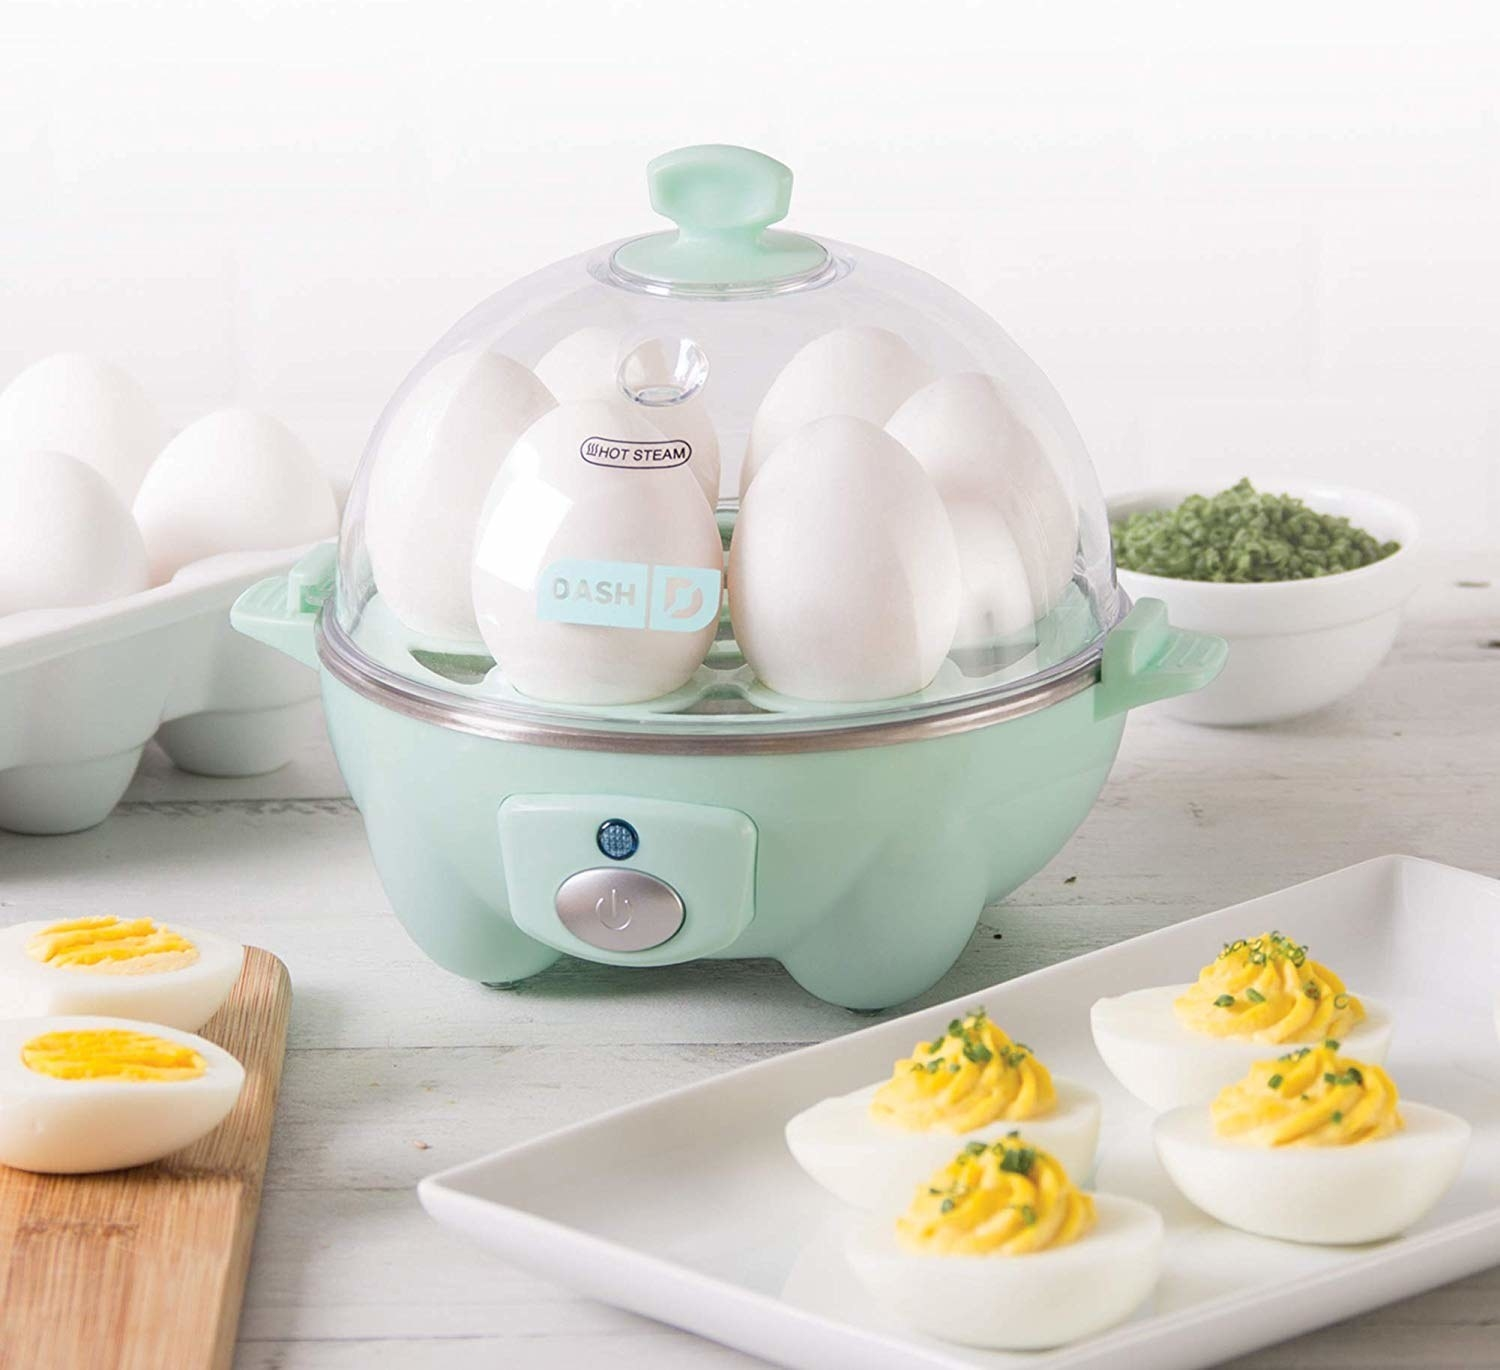 egg cooker with pastel blue base and clear glass cover